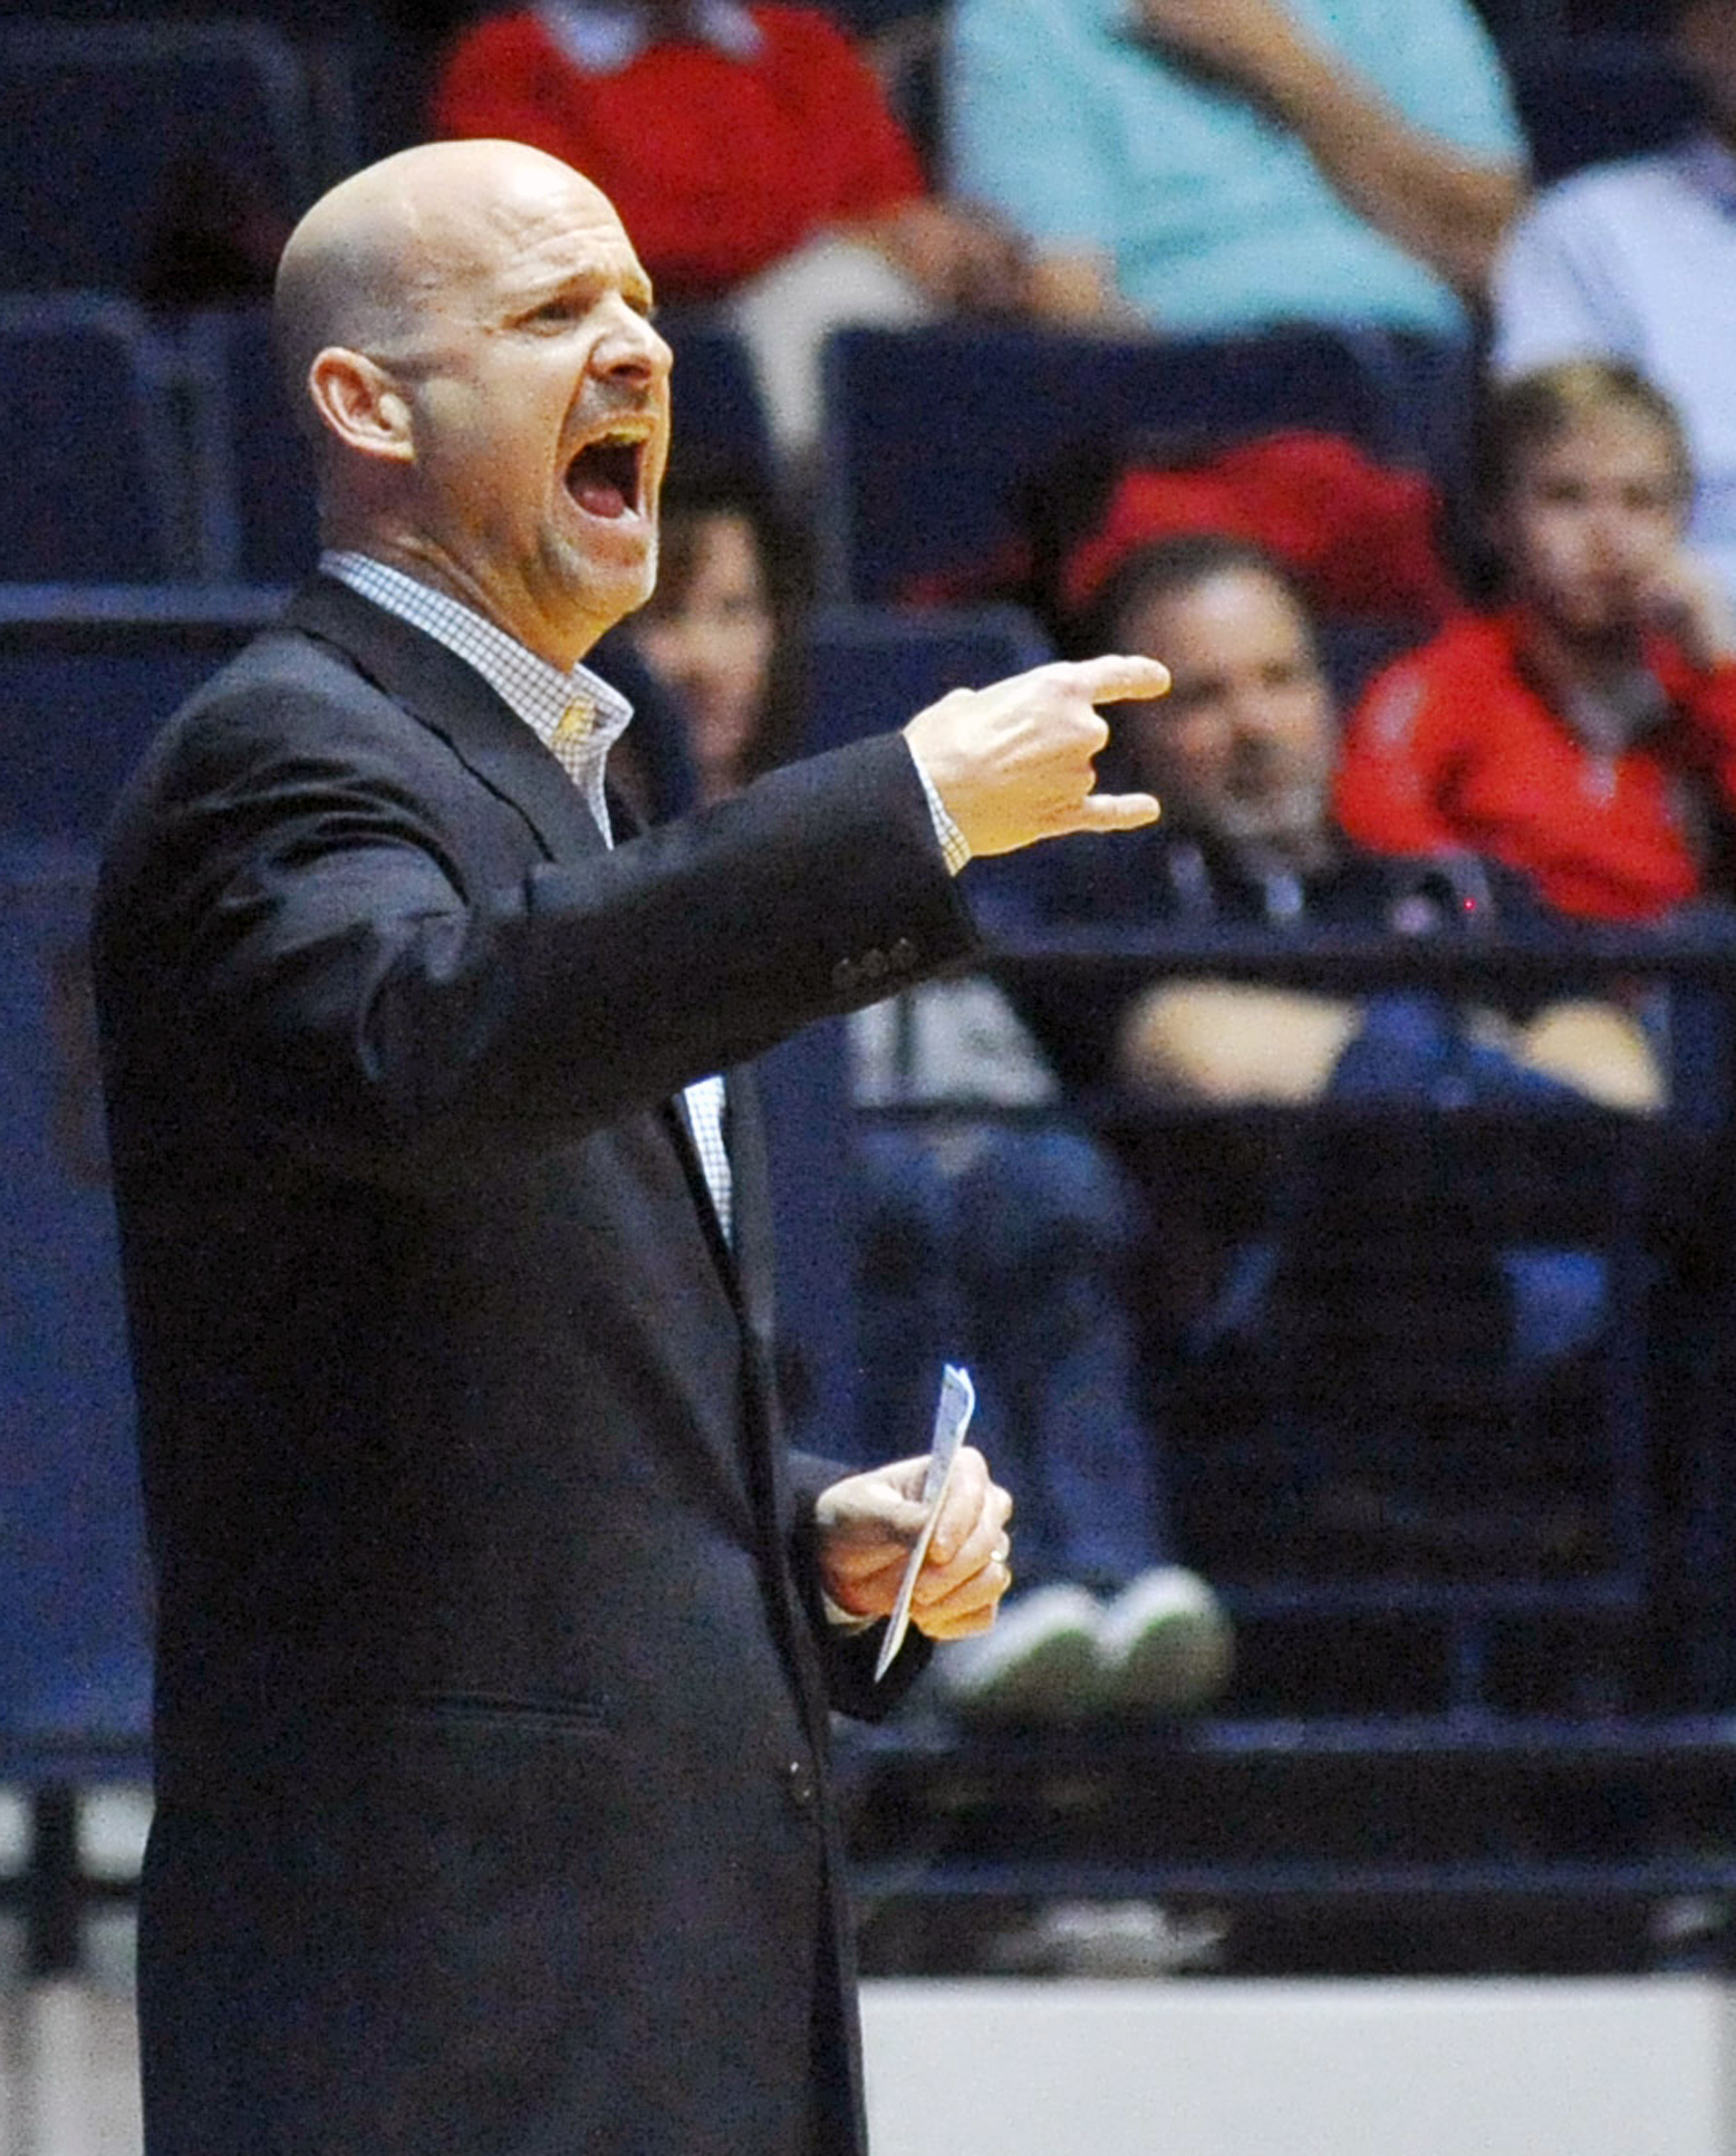 Mississippi head coach Andy Kennedy yells instructions during an NCAA college basketball game against Georgia State in Oxford, Miss., Wednesday, Nov. 25, 2015. (Bruce Newman/The Oxford Eagle via AP)  NO SALES; MANDATORY CREDIT